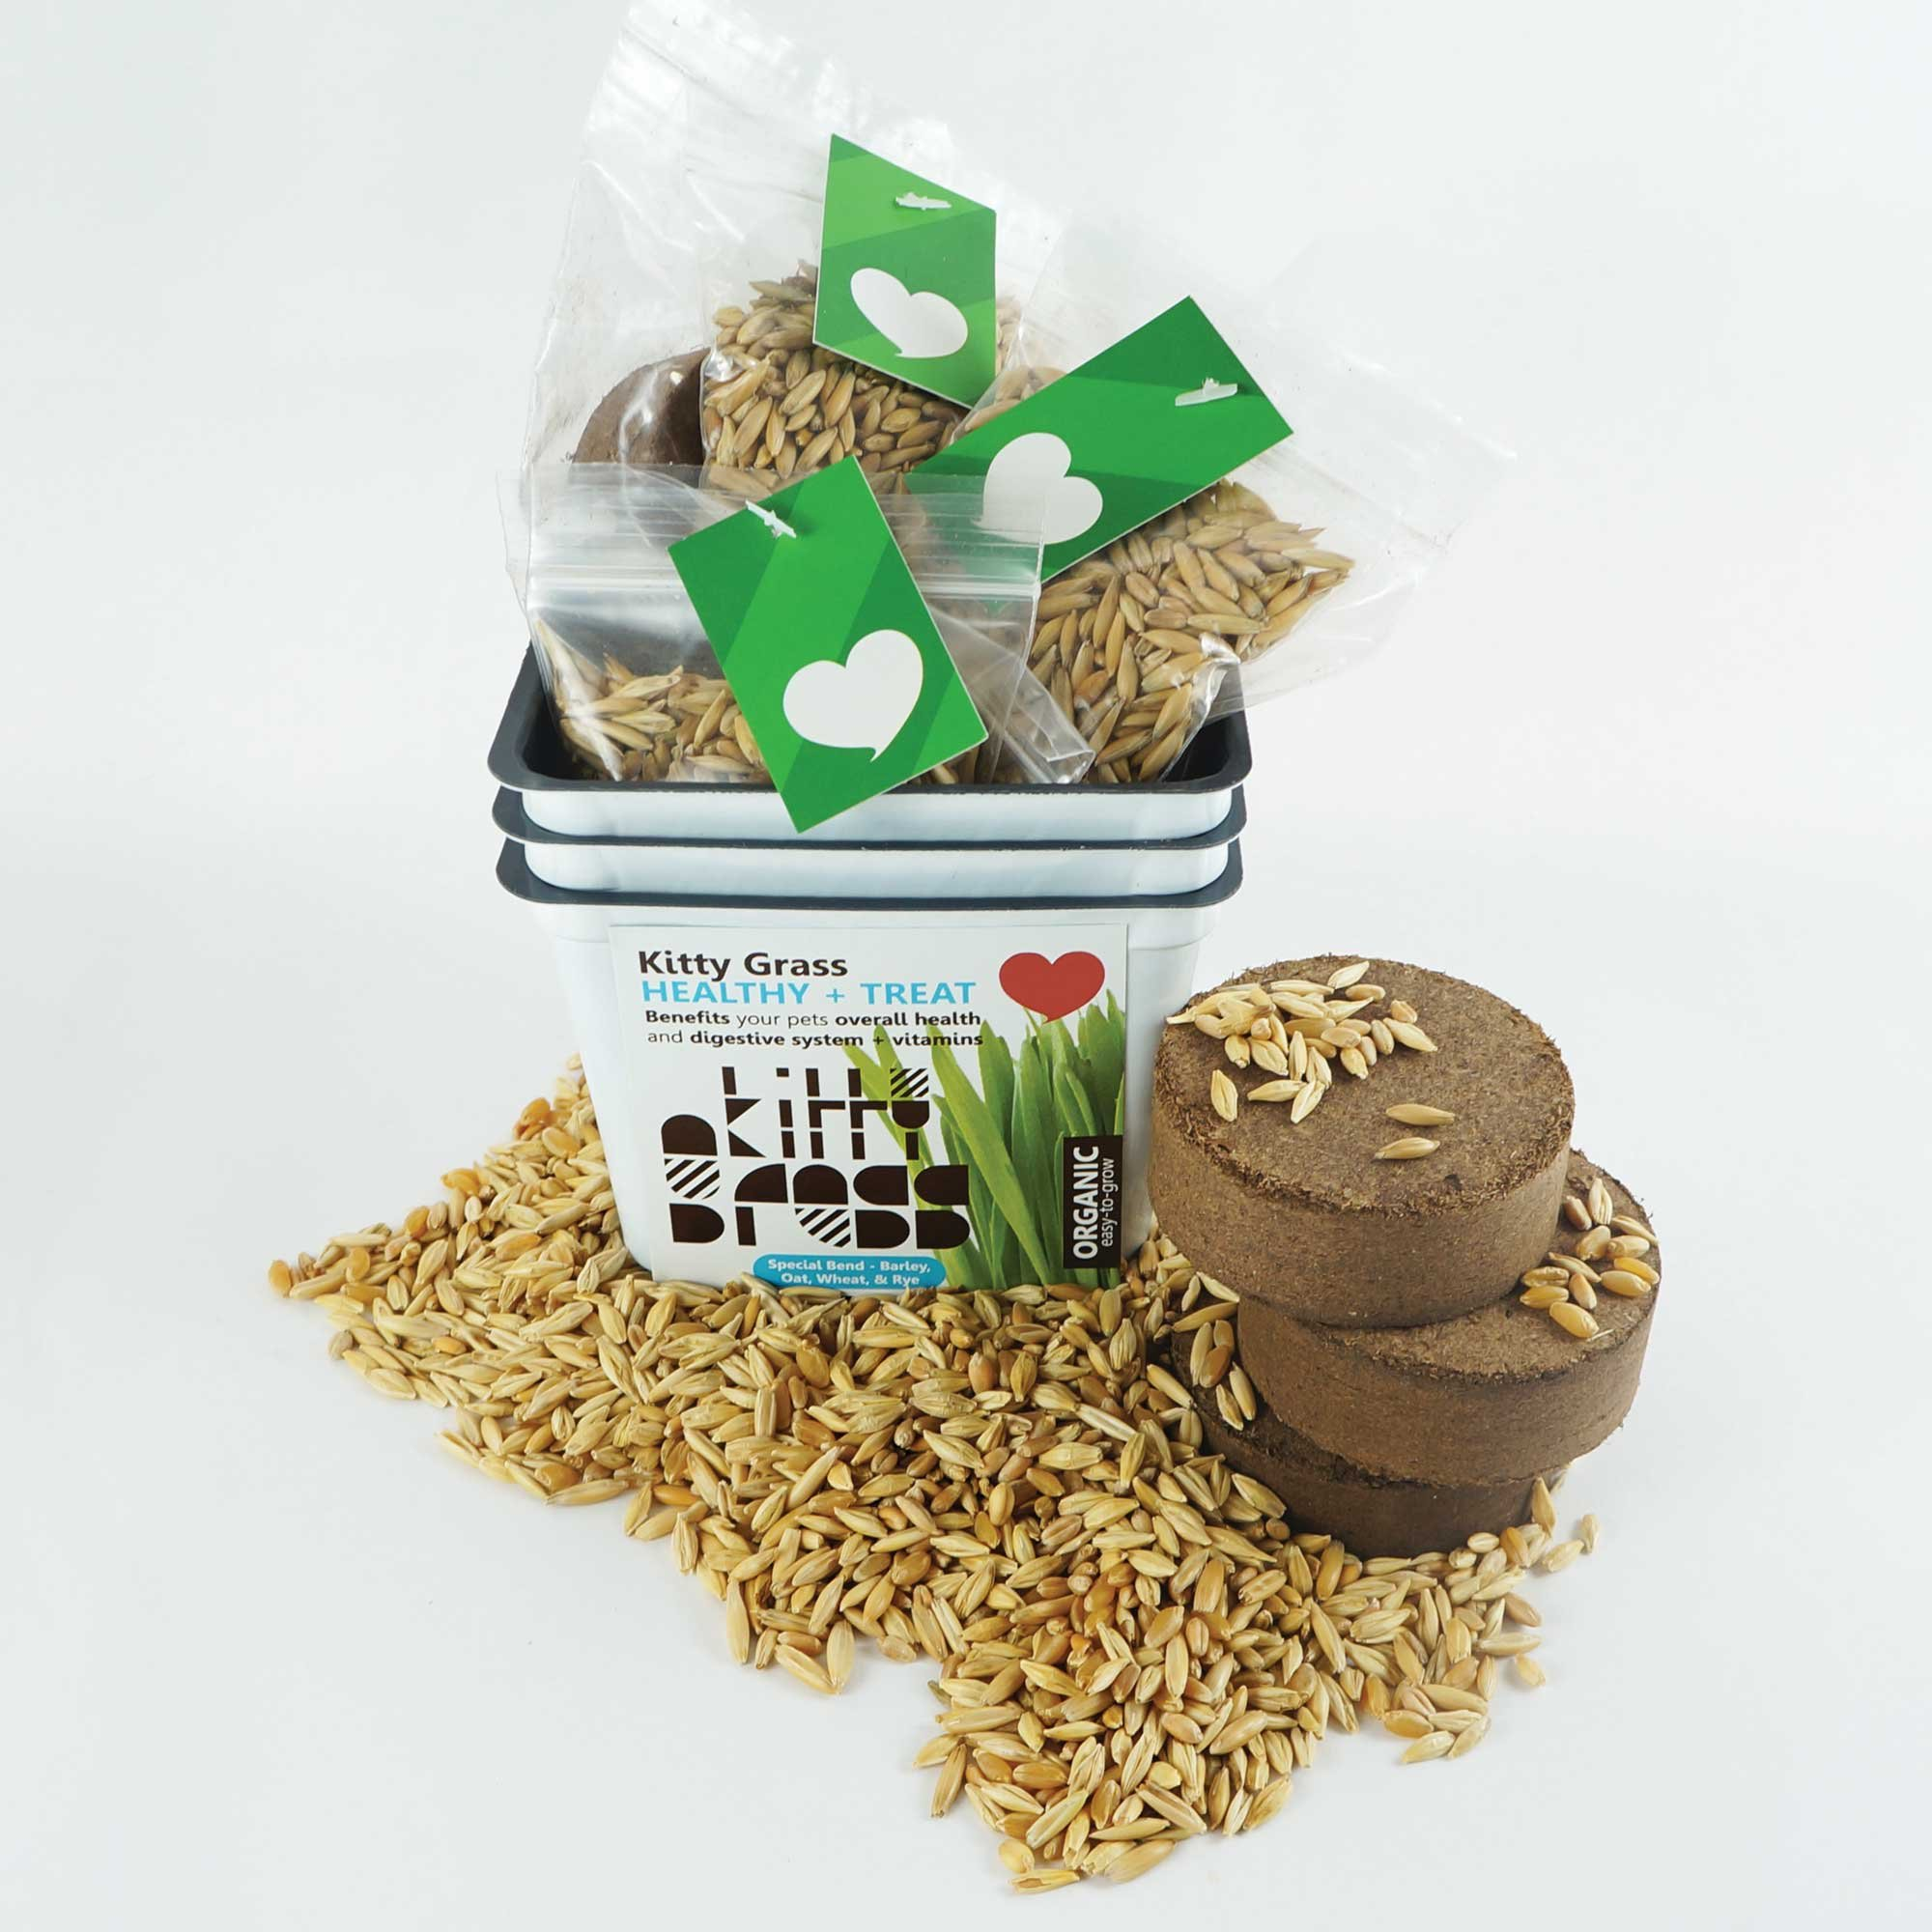 Priscillas Kitty Cat Pet Grass Seed Refill Pack and 100% Organic Soil Pods (Barley, Oats, Wheat and Rye) Over 3 Oz. by Priscilla's Pet Products